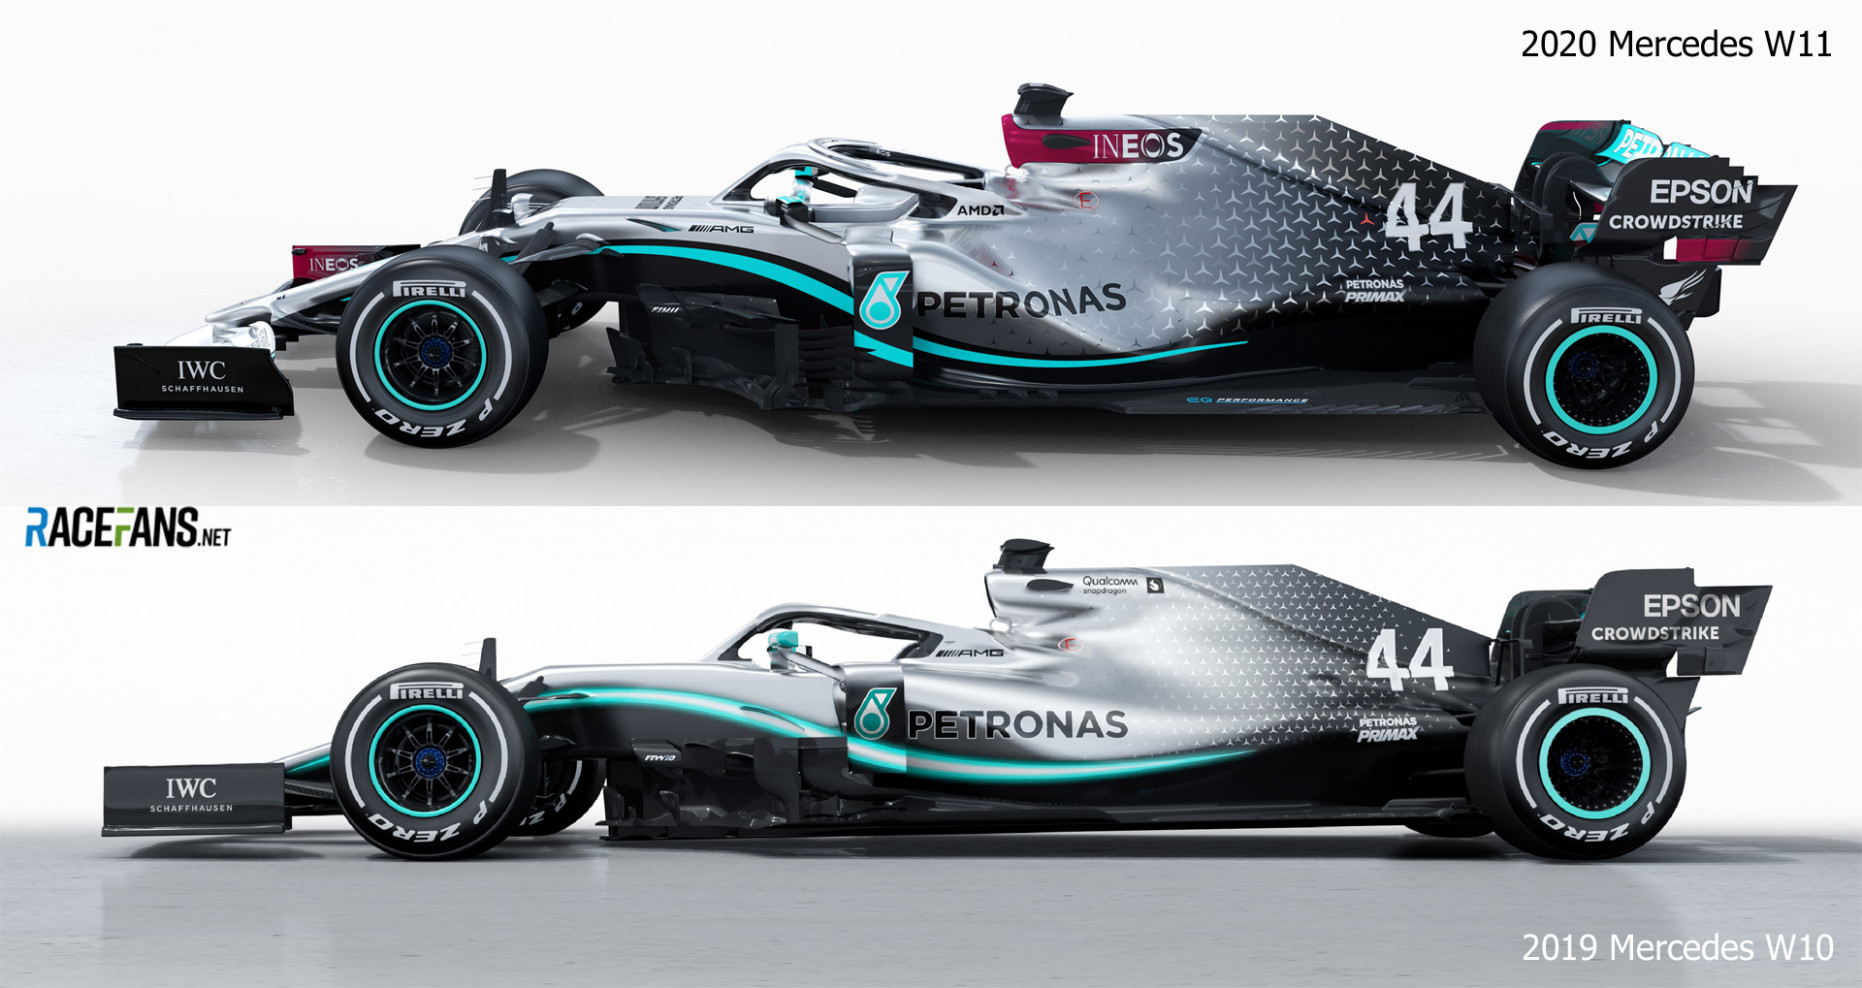 Mercedes 6 and 6 cars - side · RaceFans - mercedes w10 f1 2020